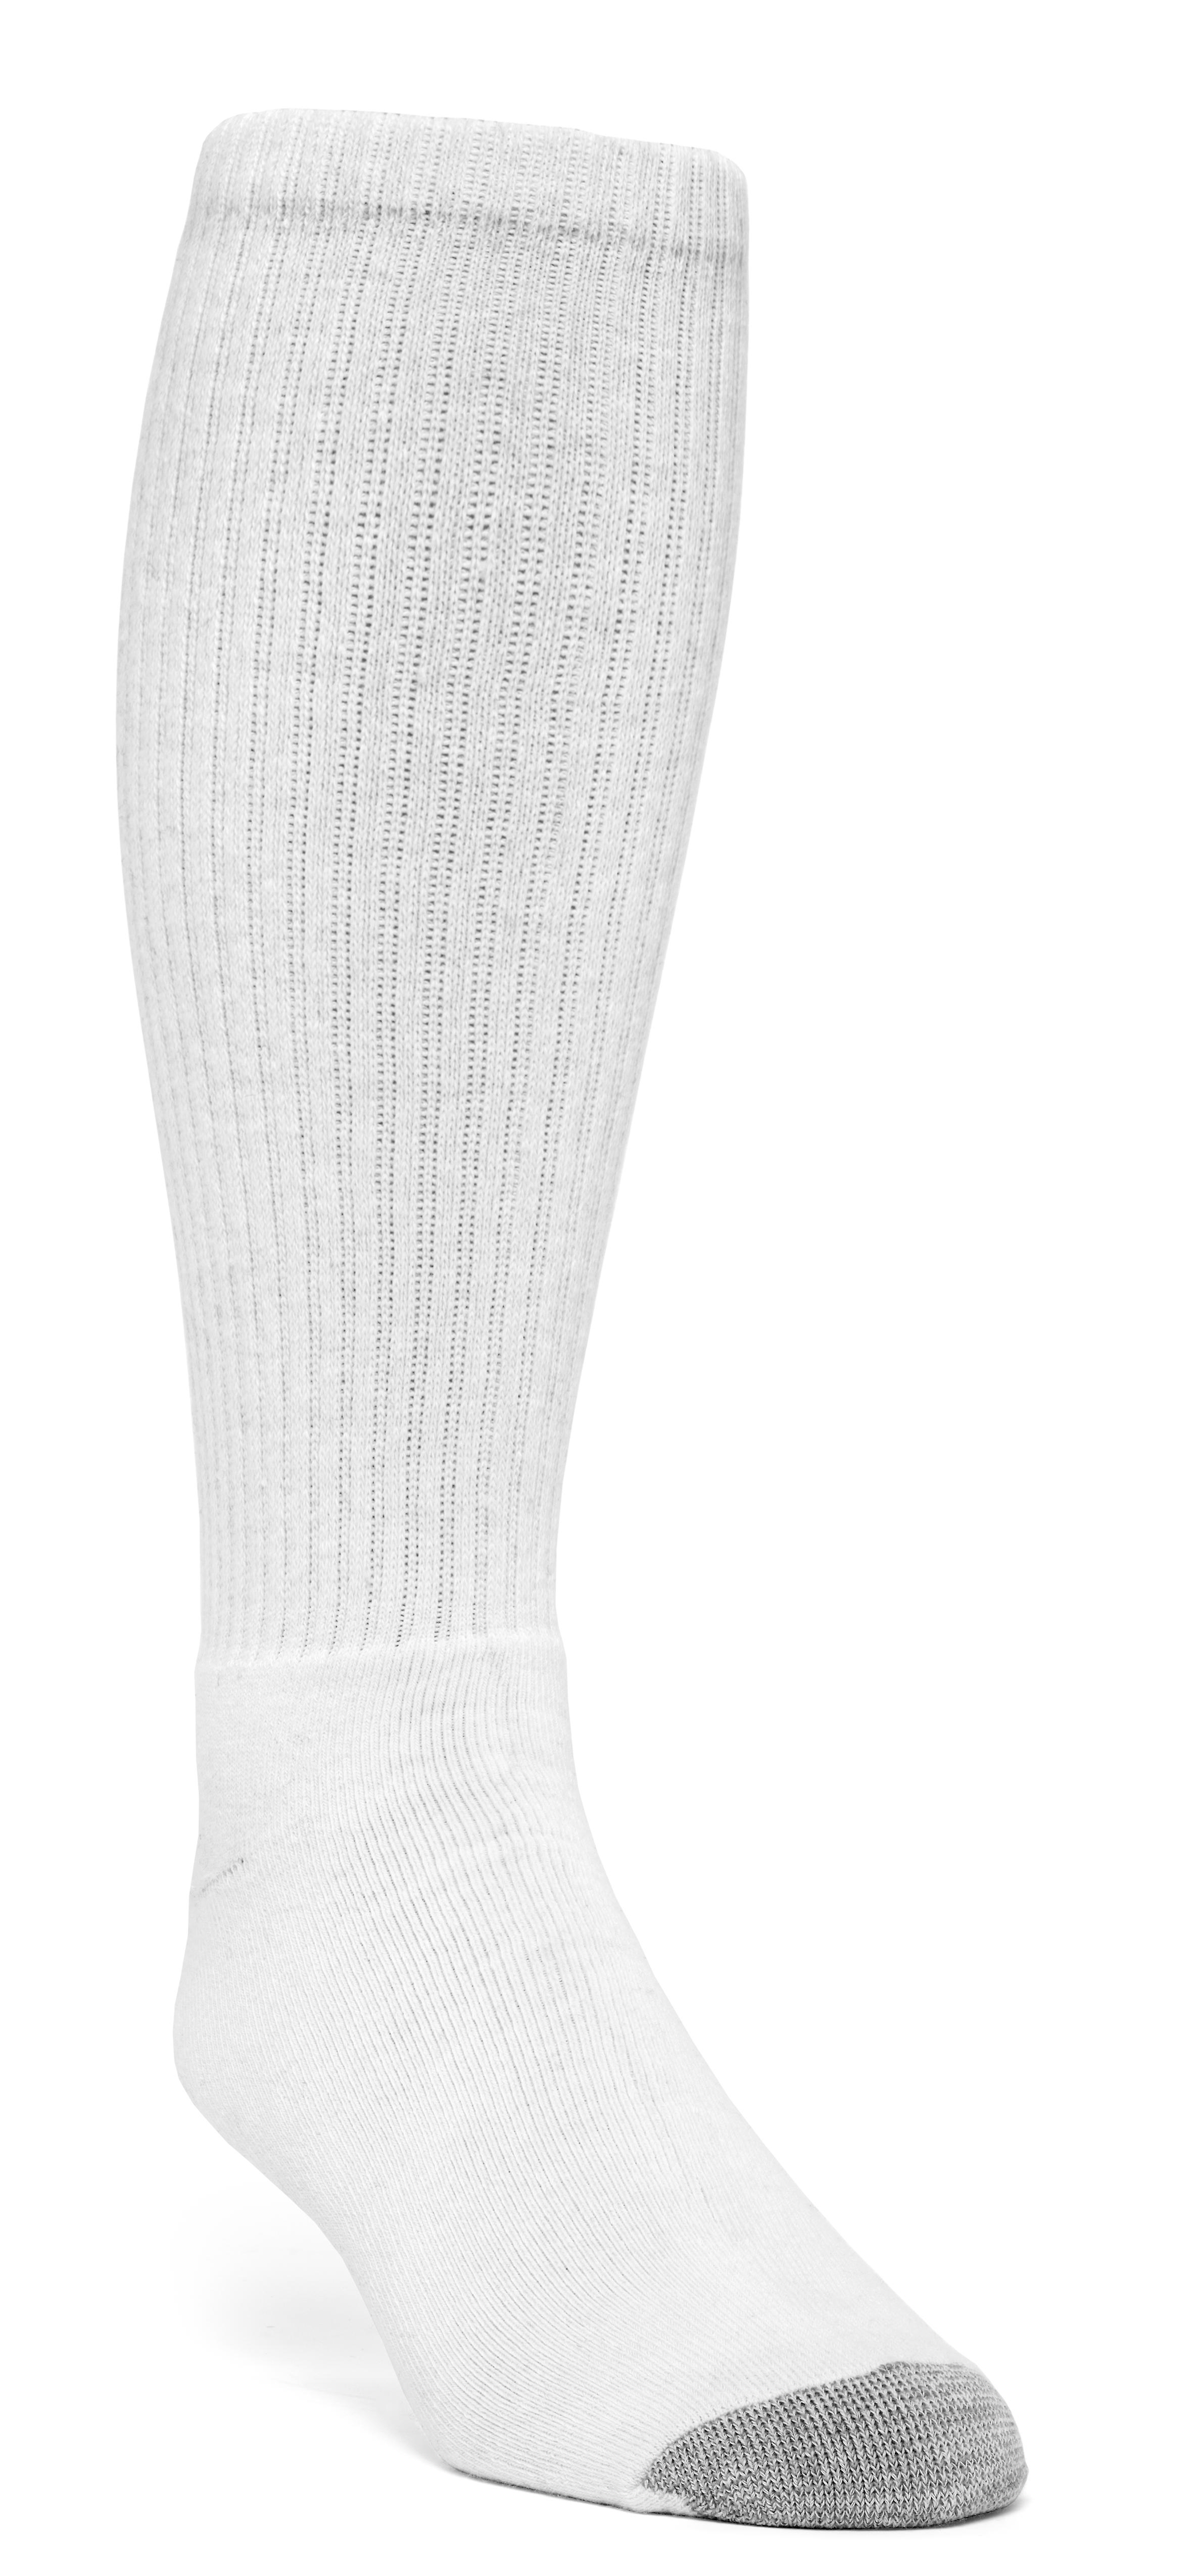 Galiva Women's Cotton Extra Soft Over the Calf Cushion Socks - 3 Pairs